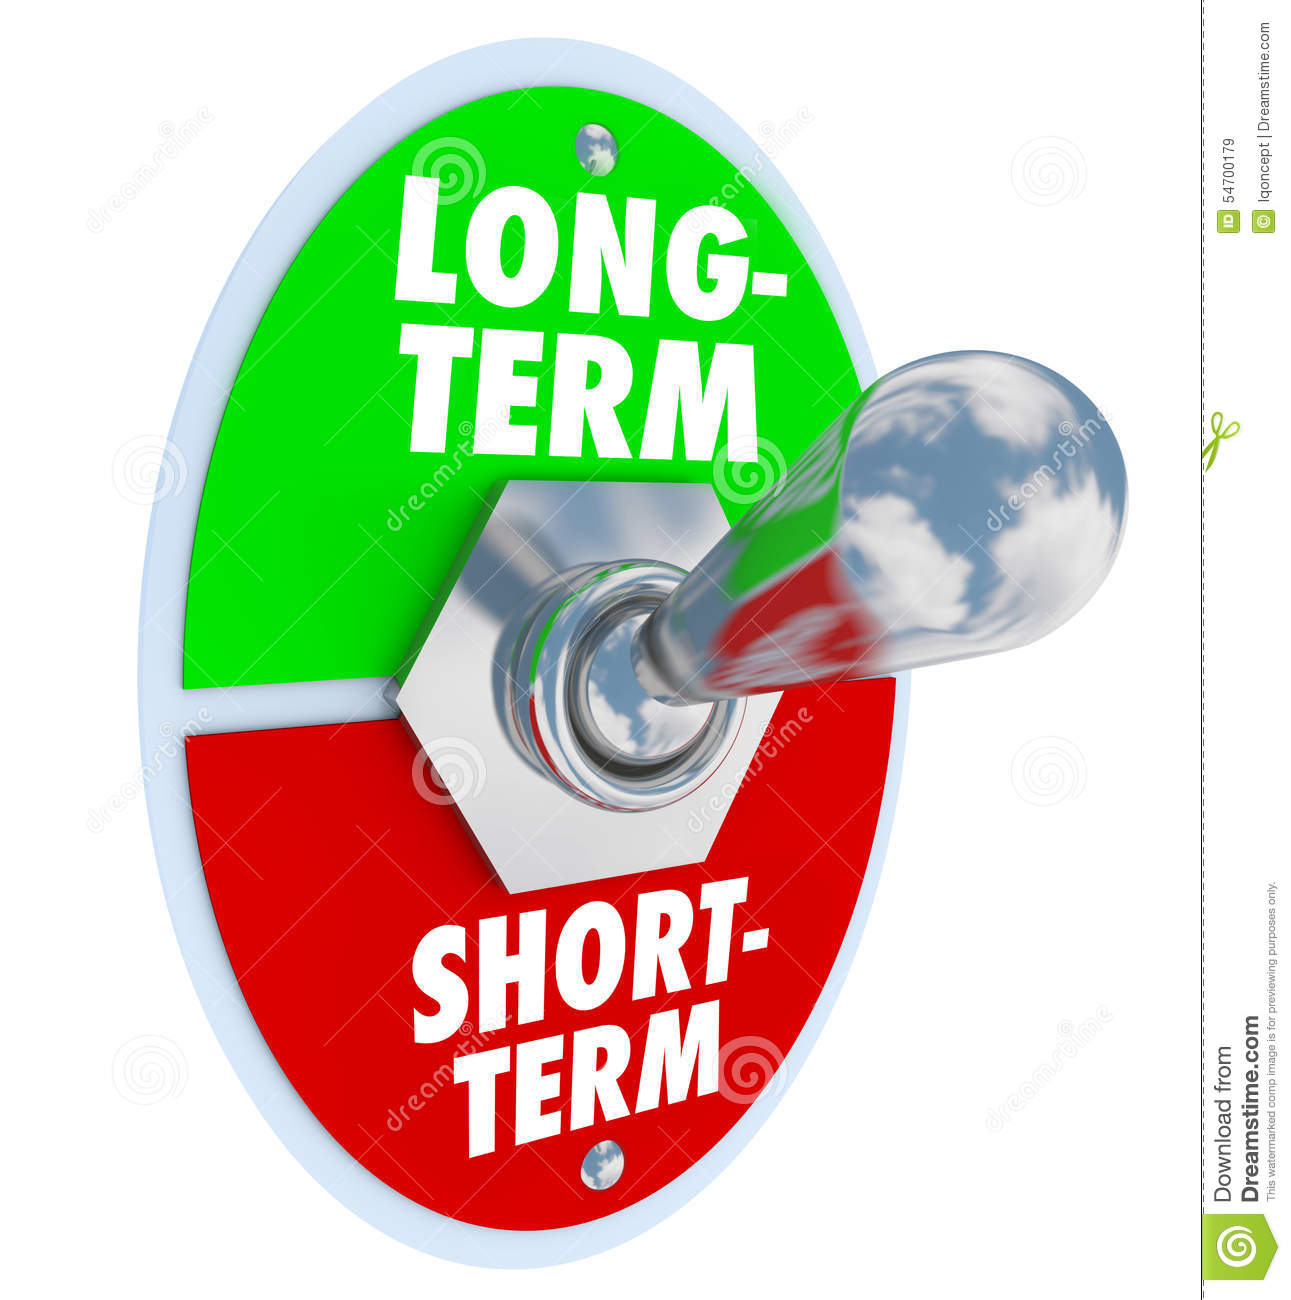 Long And Short Term : Long vs short term toggle switch more time investment